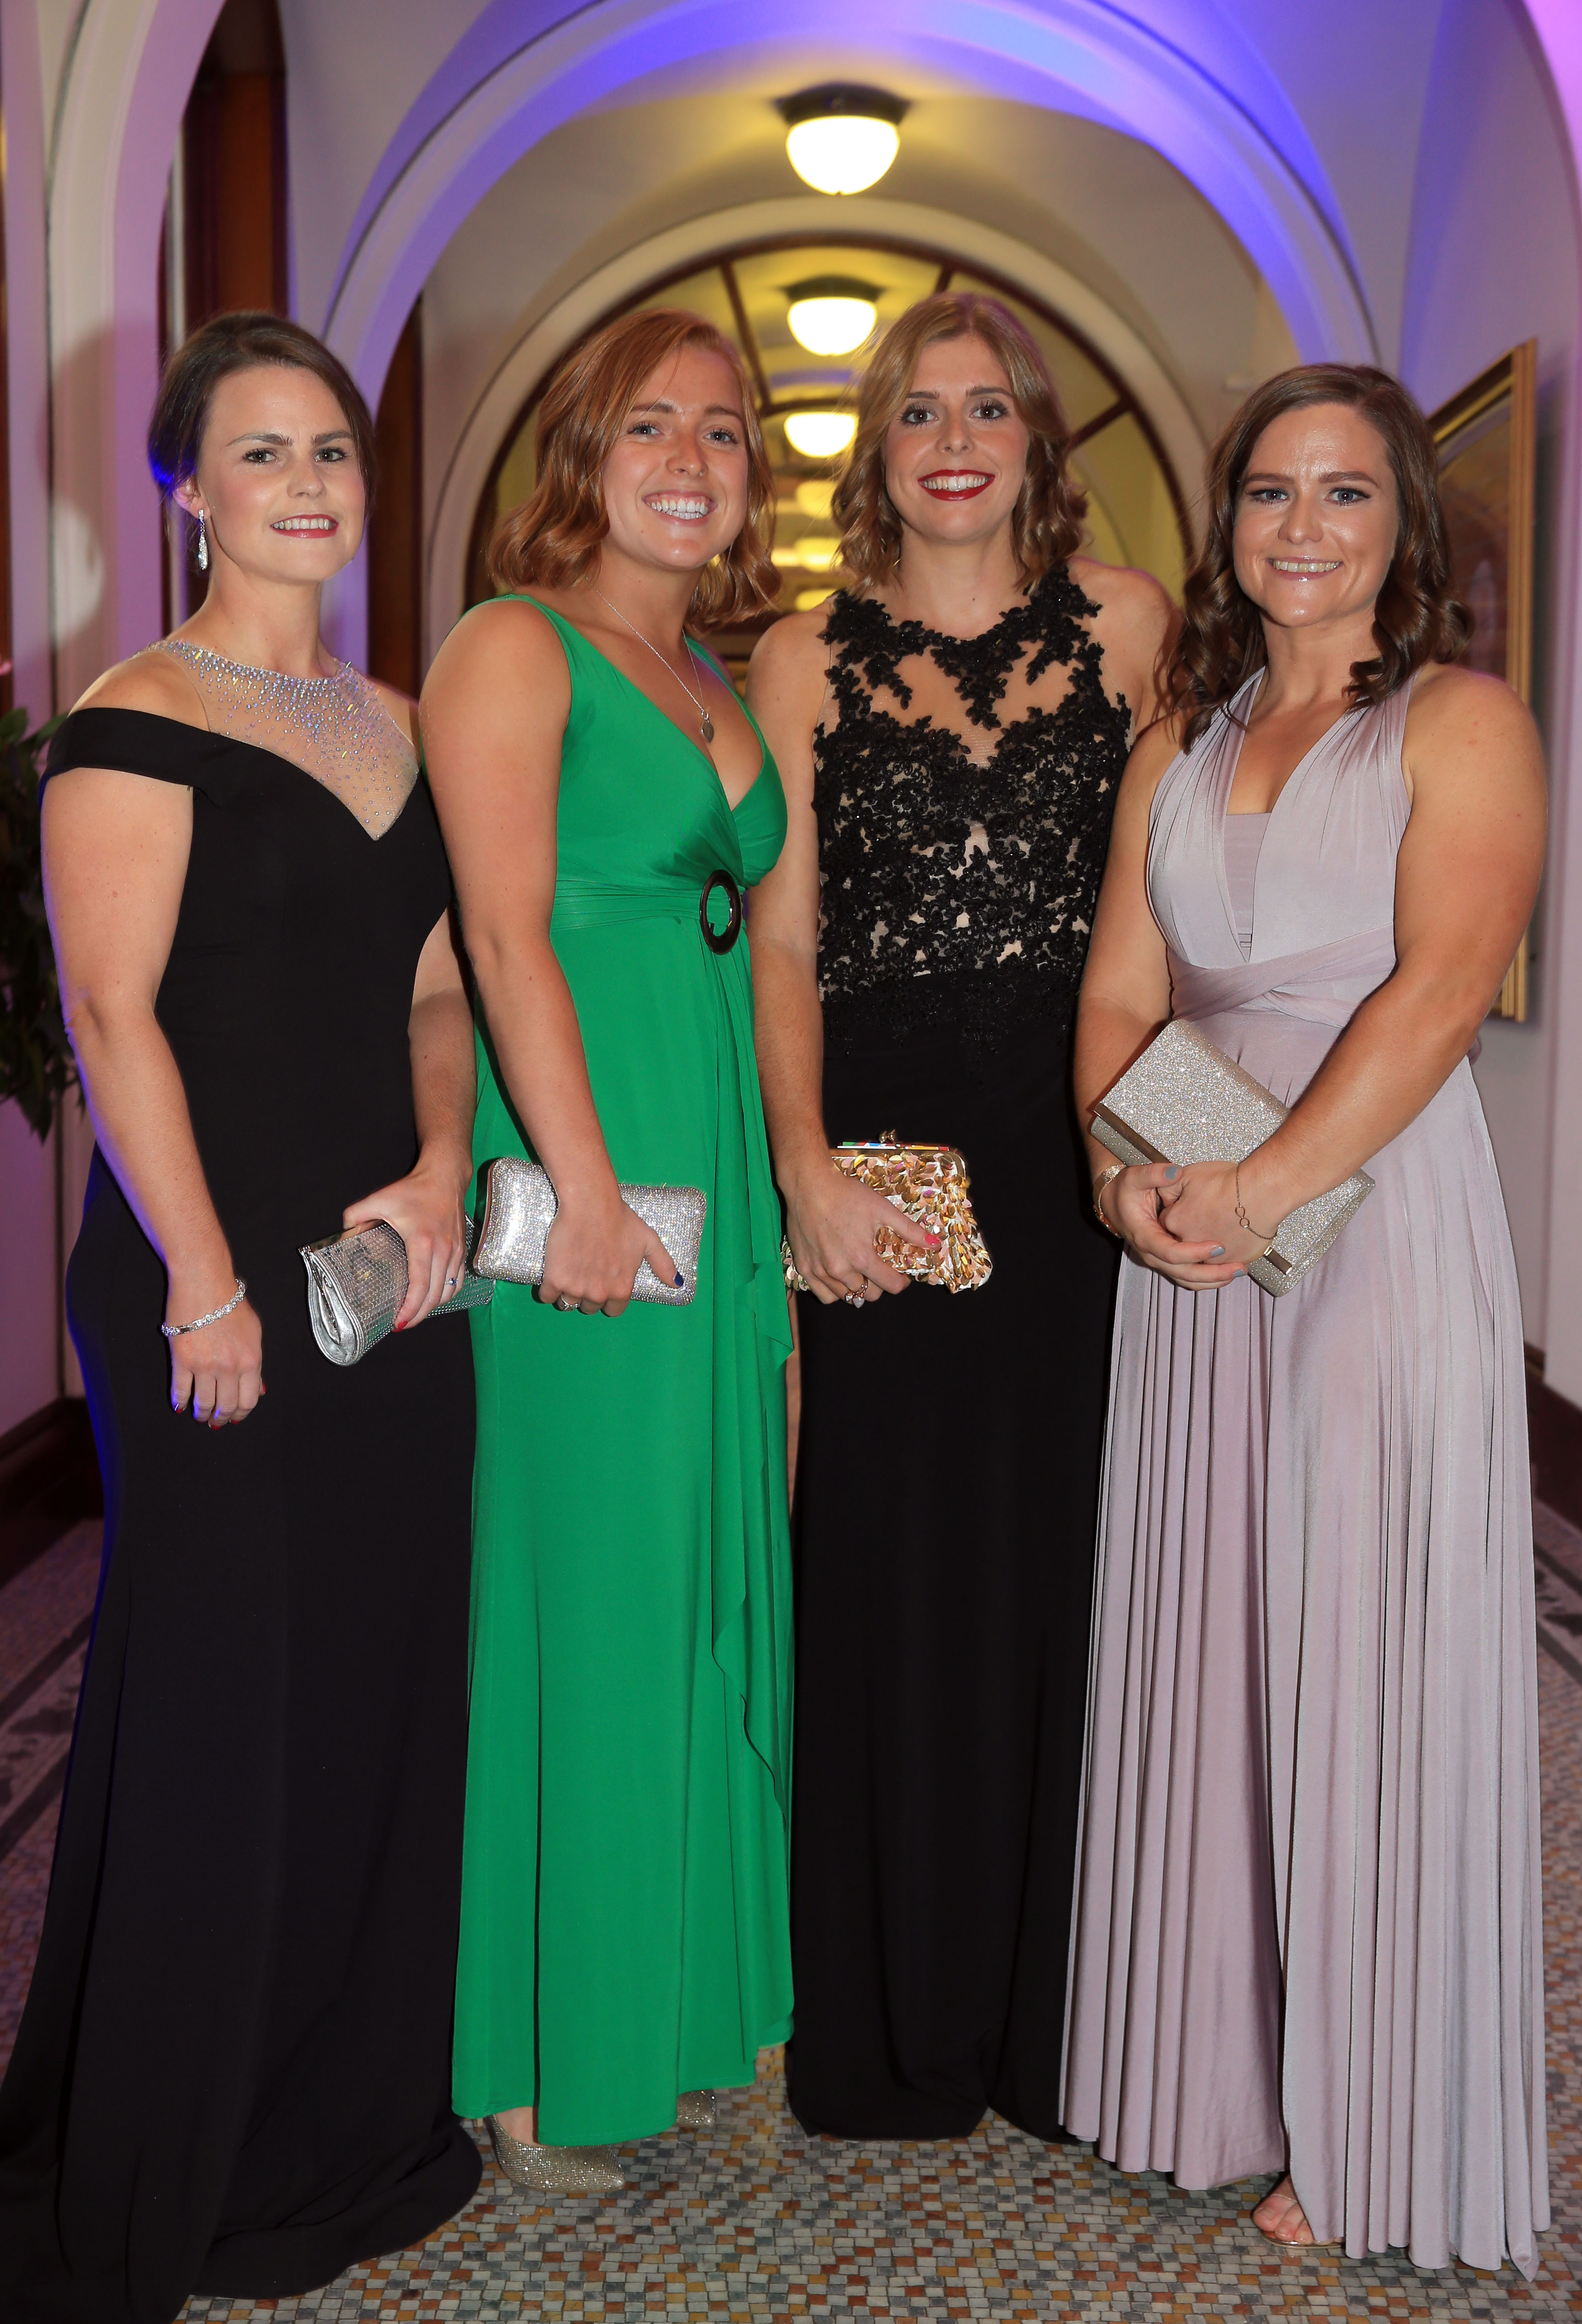 PACEMAKER, BELFAST, 6/9/2018: Lizzie Colvin, Zoe Wilson, Katie Mullan and Shirley McCay from the history-making Ireland hockey team pictured at the Ulster Tatler Awards at Belfast City Hall. Northern IrelandÕs longest-running glossy magazine, Ulster Tatler, is celebrating over 50 years on the shelves of NI, and its eleventh annual awards recognise the people and businesses of Northern Ireland that have lit up its pages since 1966. Northern IrelandÕs longest-running glossy magazine, Ulster Tatler, is celebrating over 50 years on the shelves of NI, and its eleventh annual awards recognise the people and businesses of Northern Ireland that have lit up its pages since 1966. PICTURE BY STEPHEN DAVISON